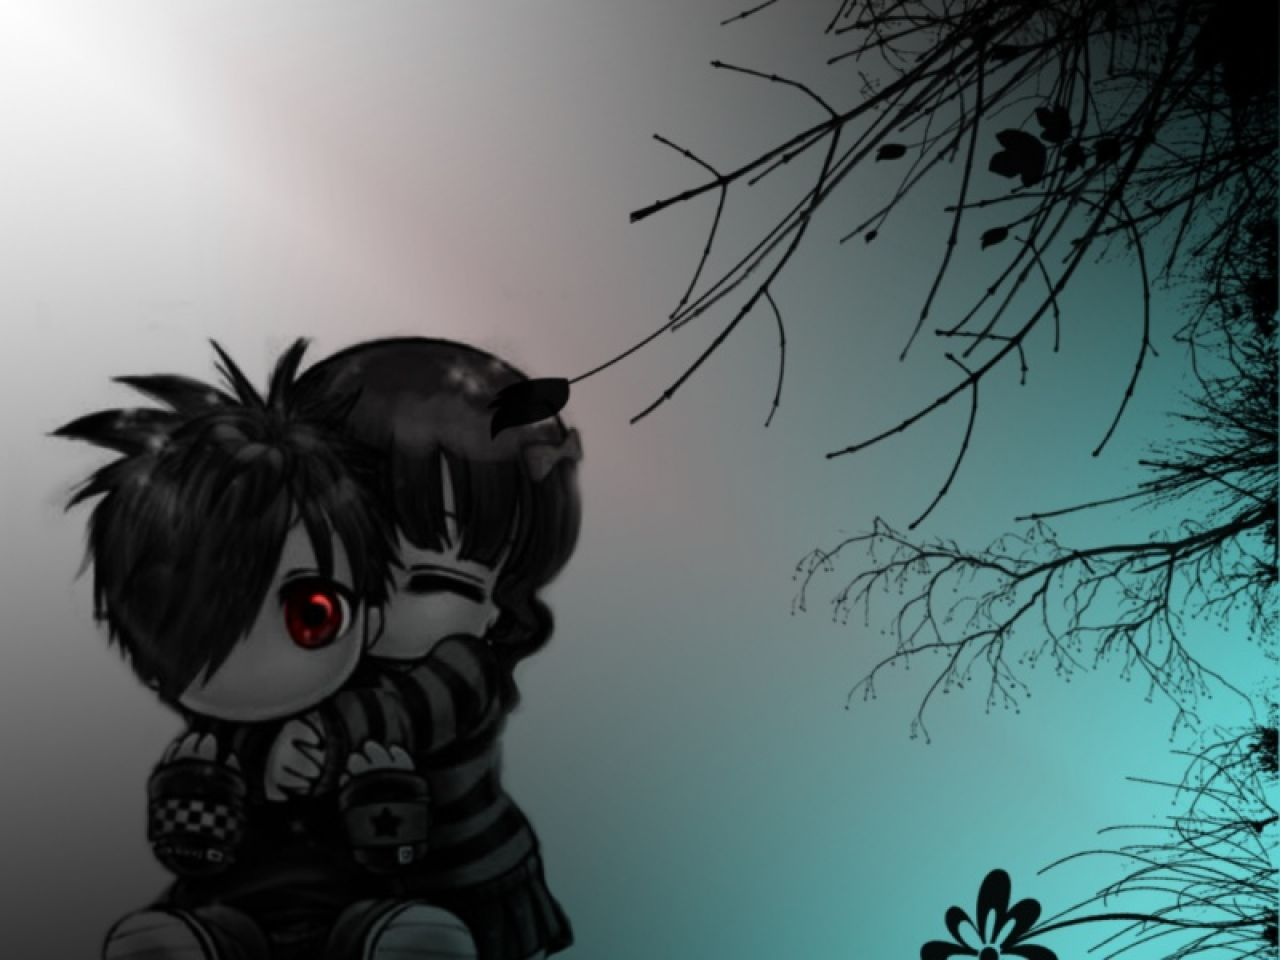 Sad Love Anime 32 Free Wallpaper - Hdlovewall.com